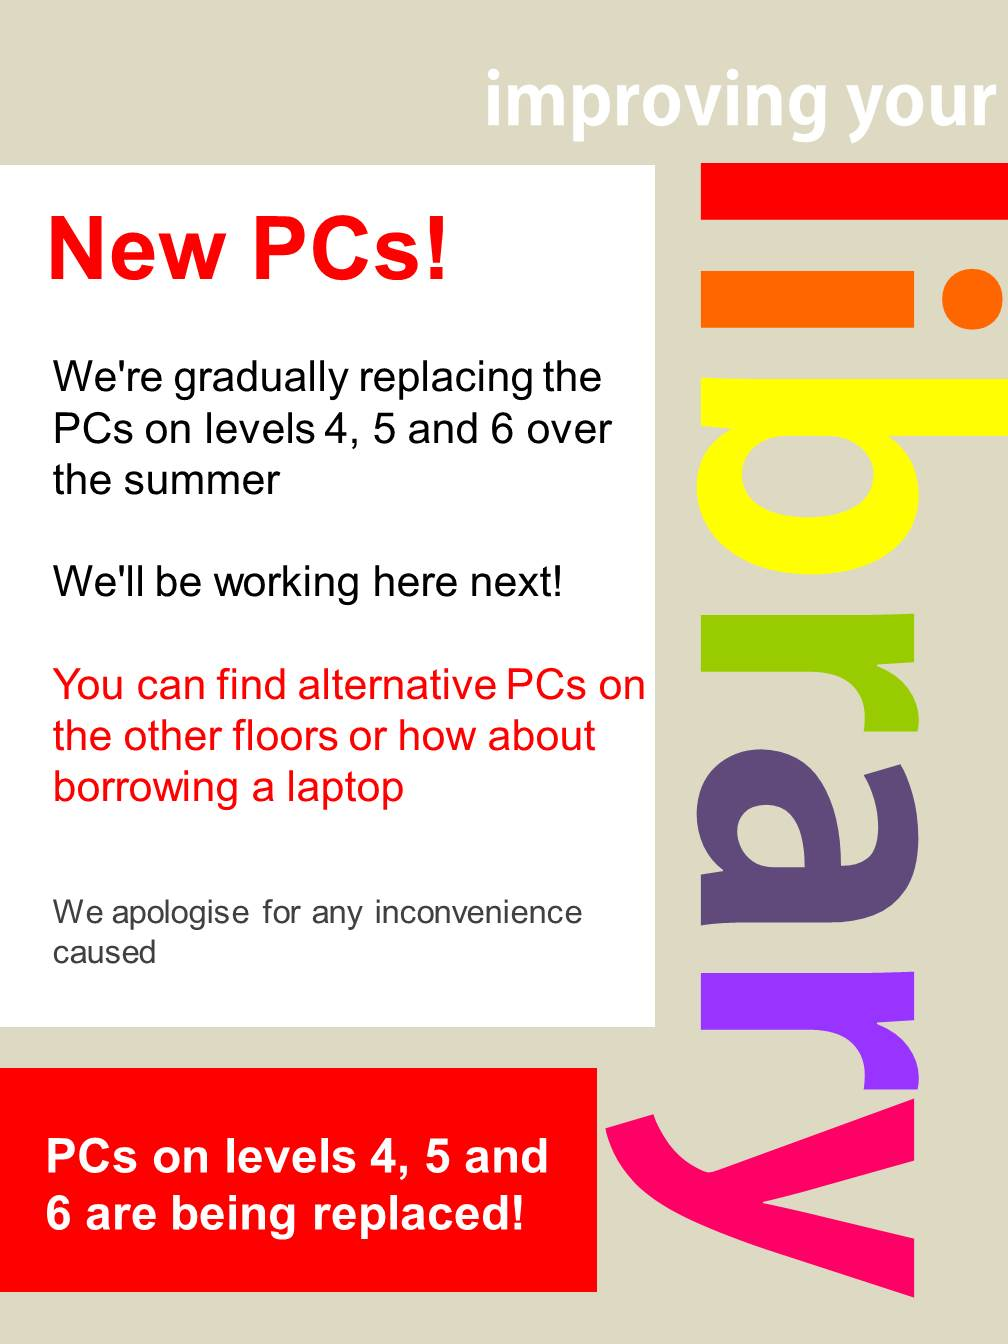 New PCs for levels 4, 5 and 6 in Adsetts!